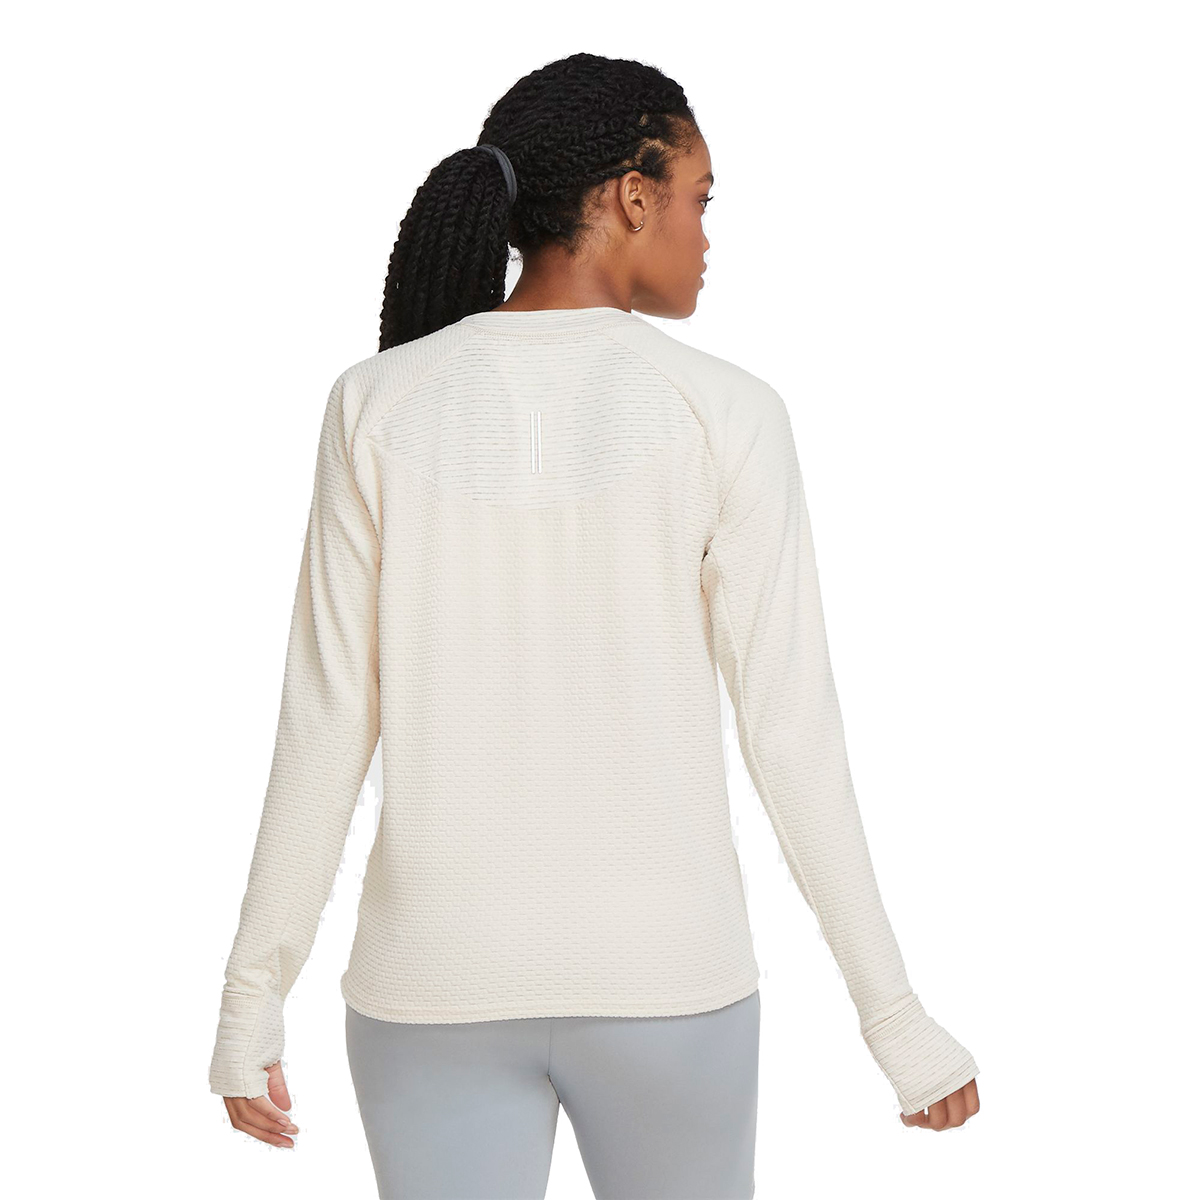 Women's Nike Sphere Crew Long Sleeve Shirt - Color: Oatmeal/Heather - Size: XS, Oatmeal/Heather, large, image 2